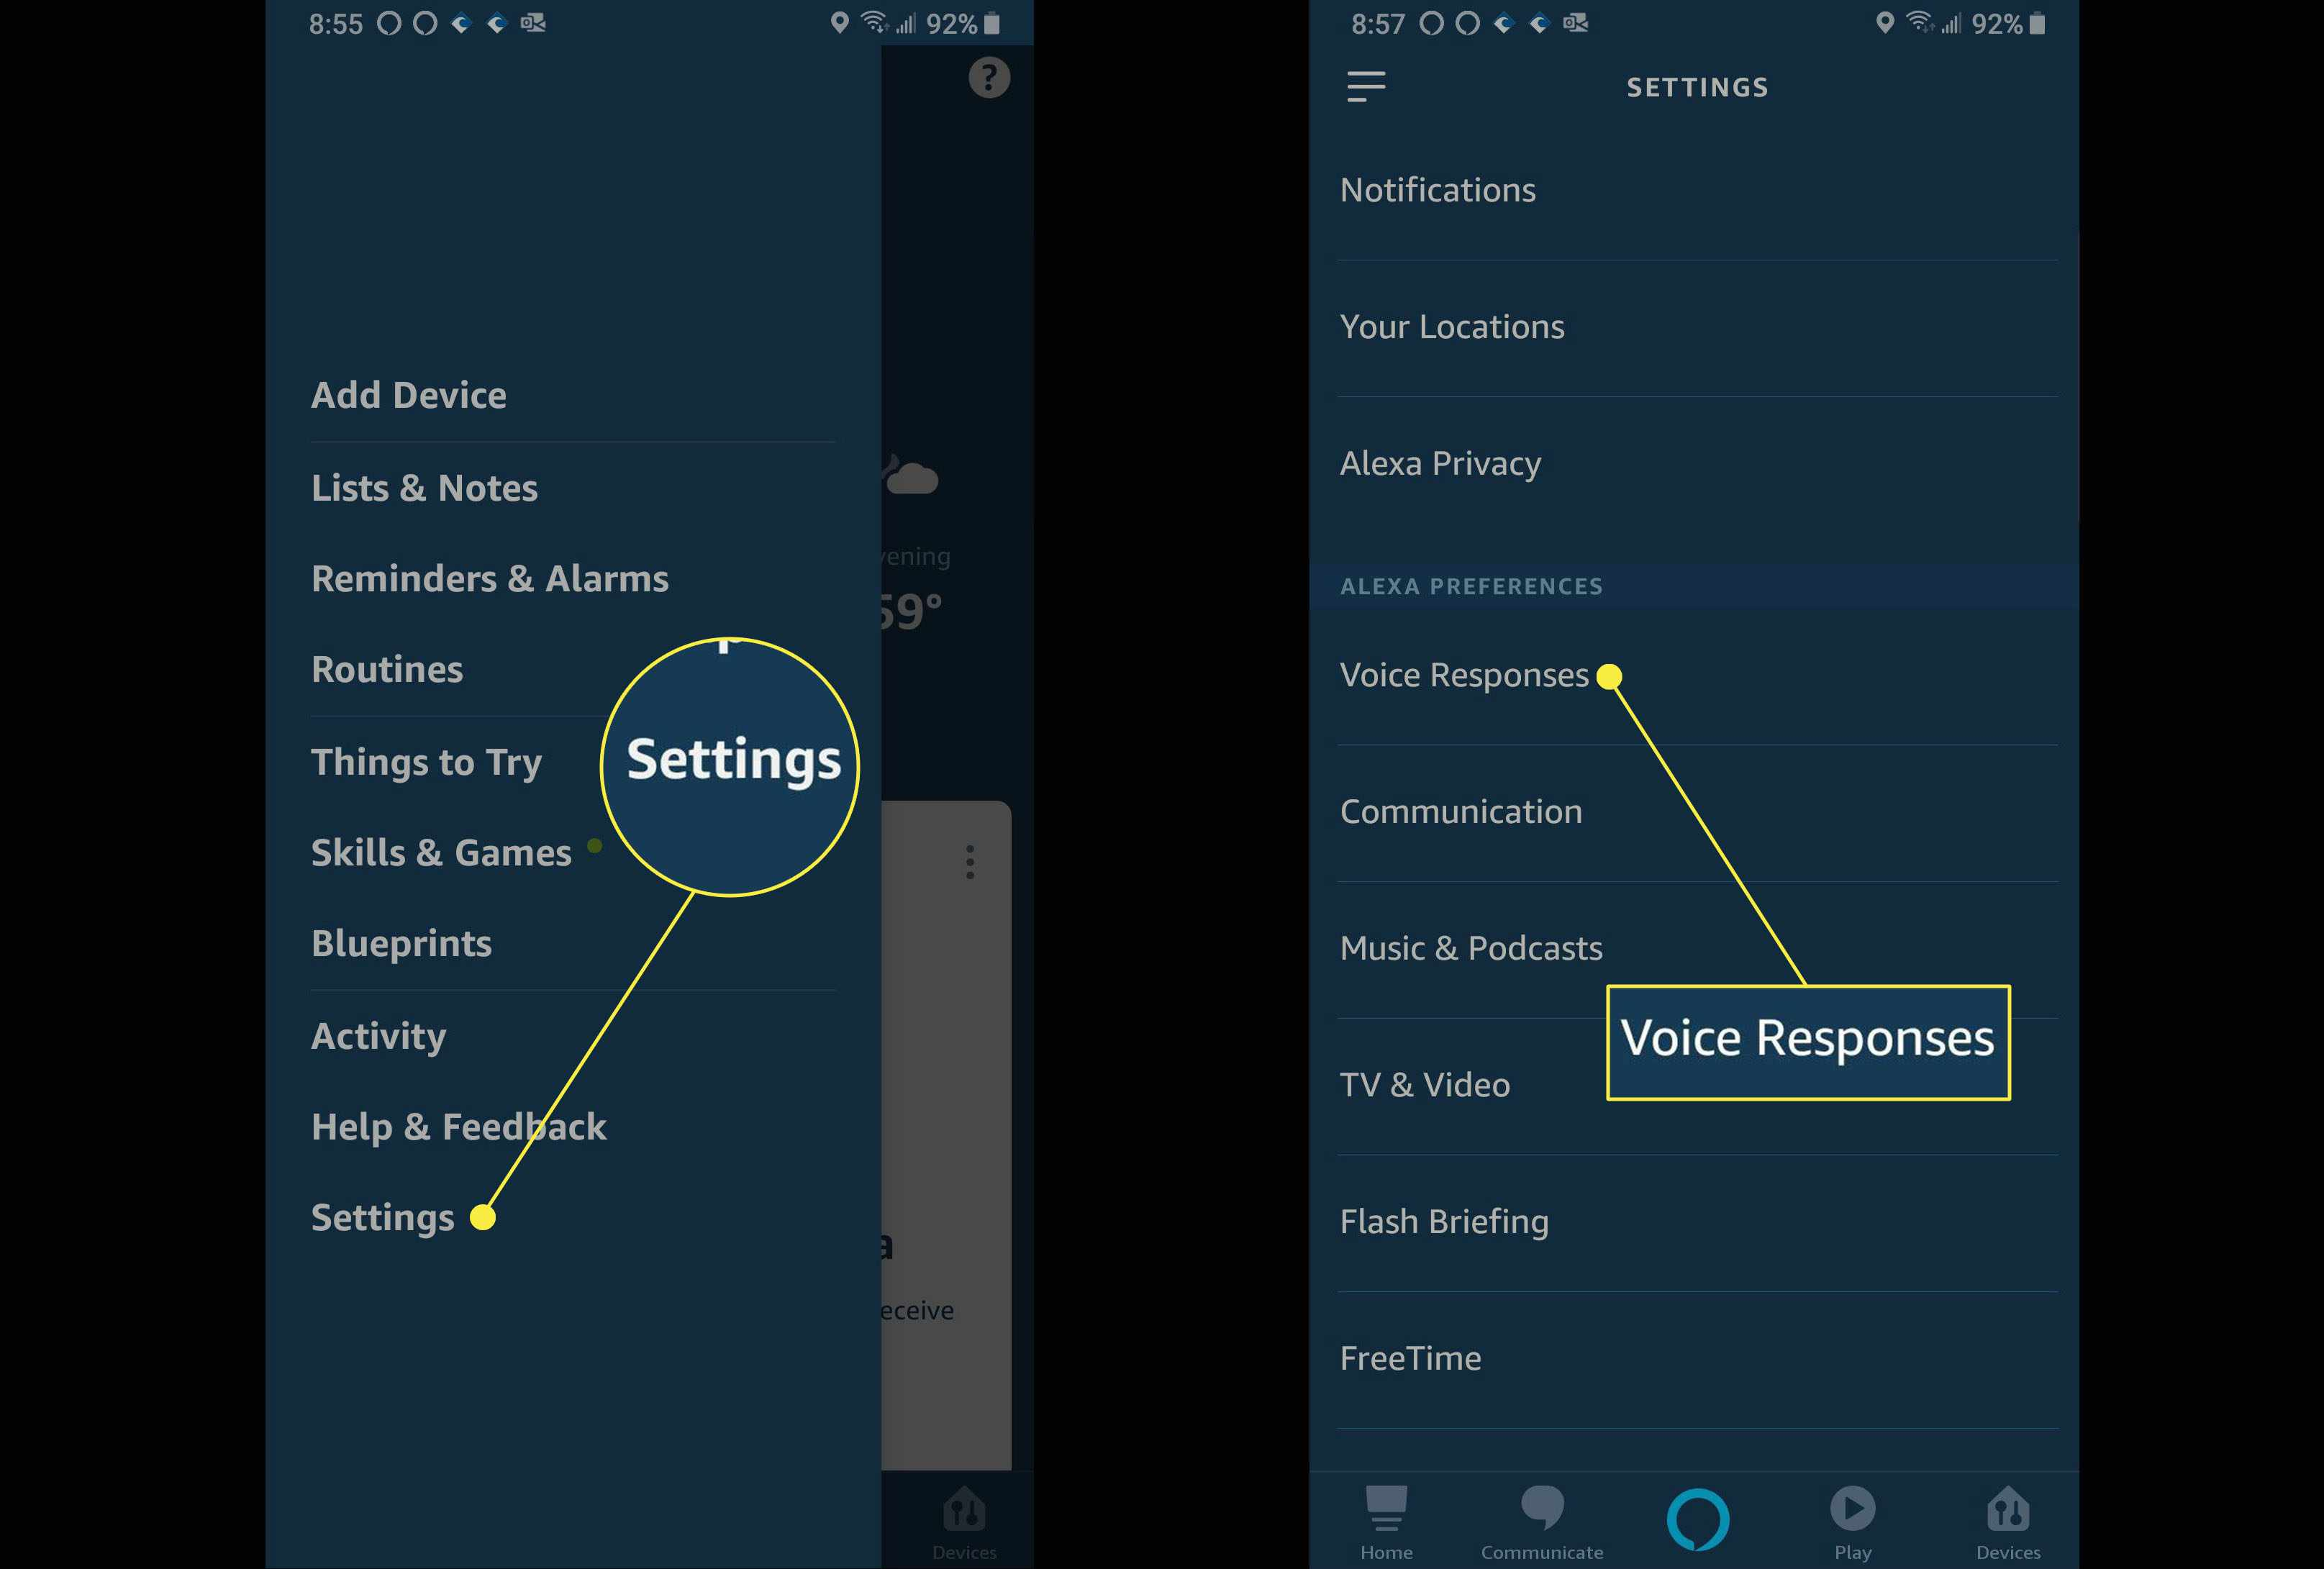 The location of the Voice Responses option in the Alexa App.